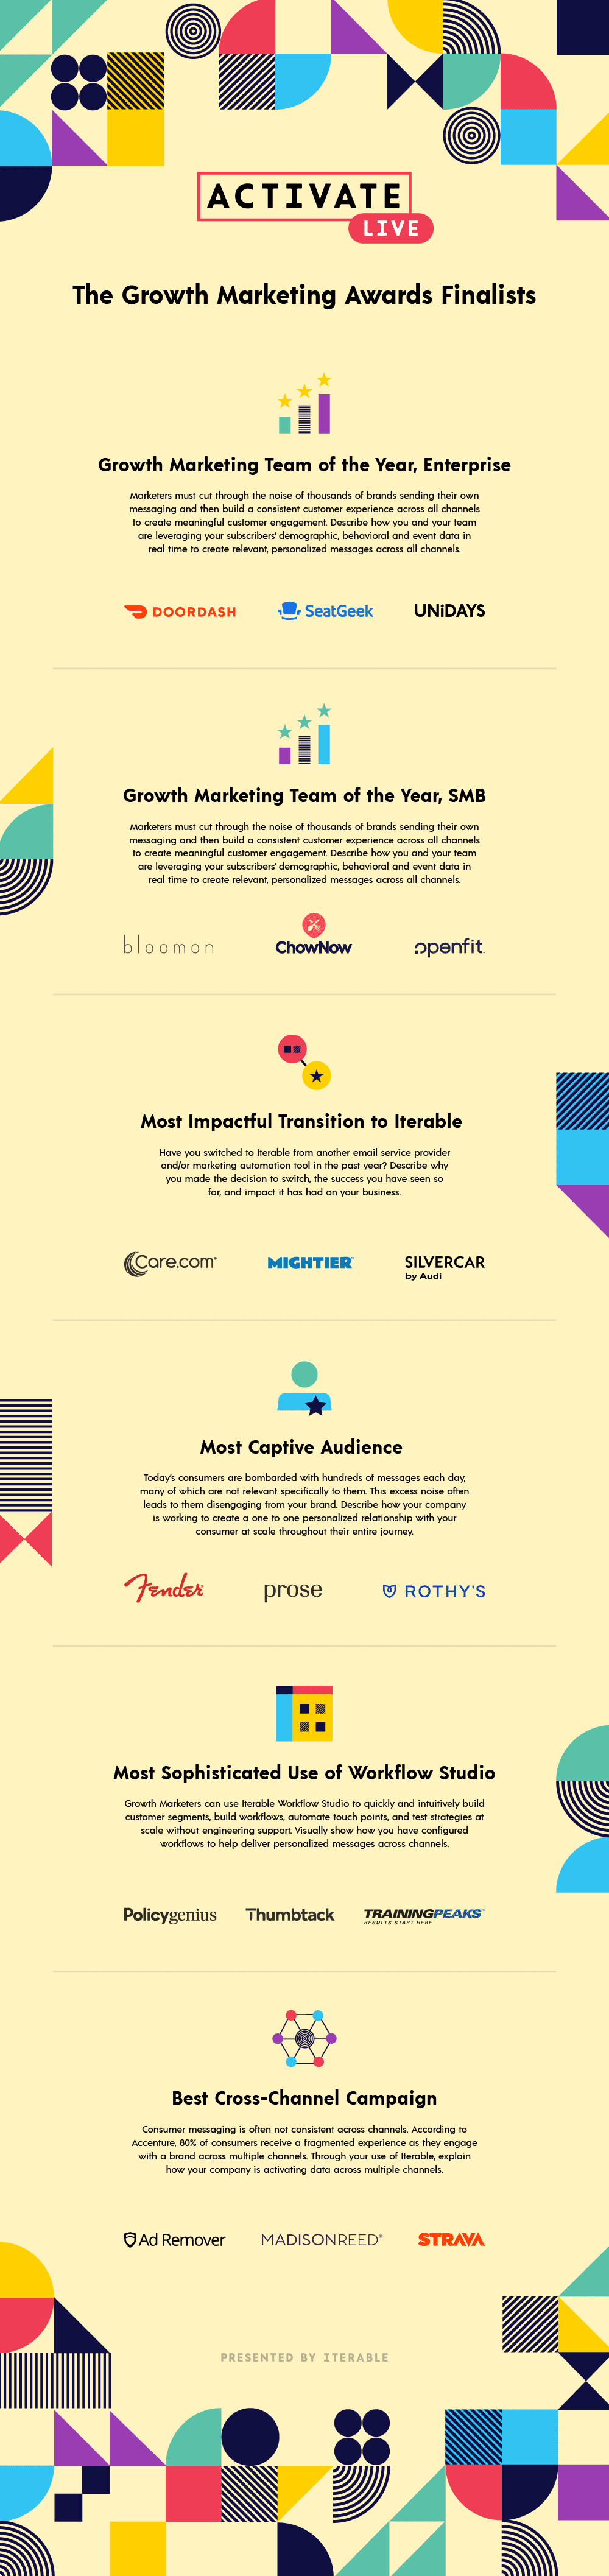 Infographic of the finalists of the 2020 Growth Marketing Awards